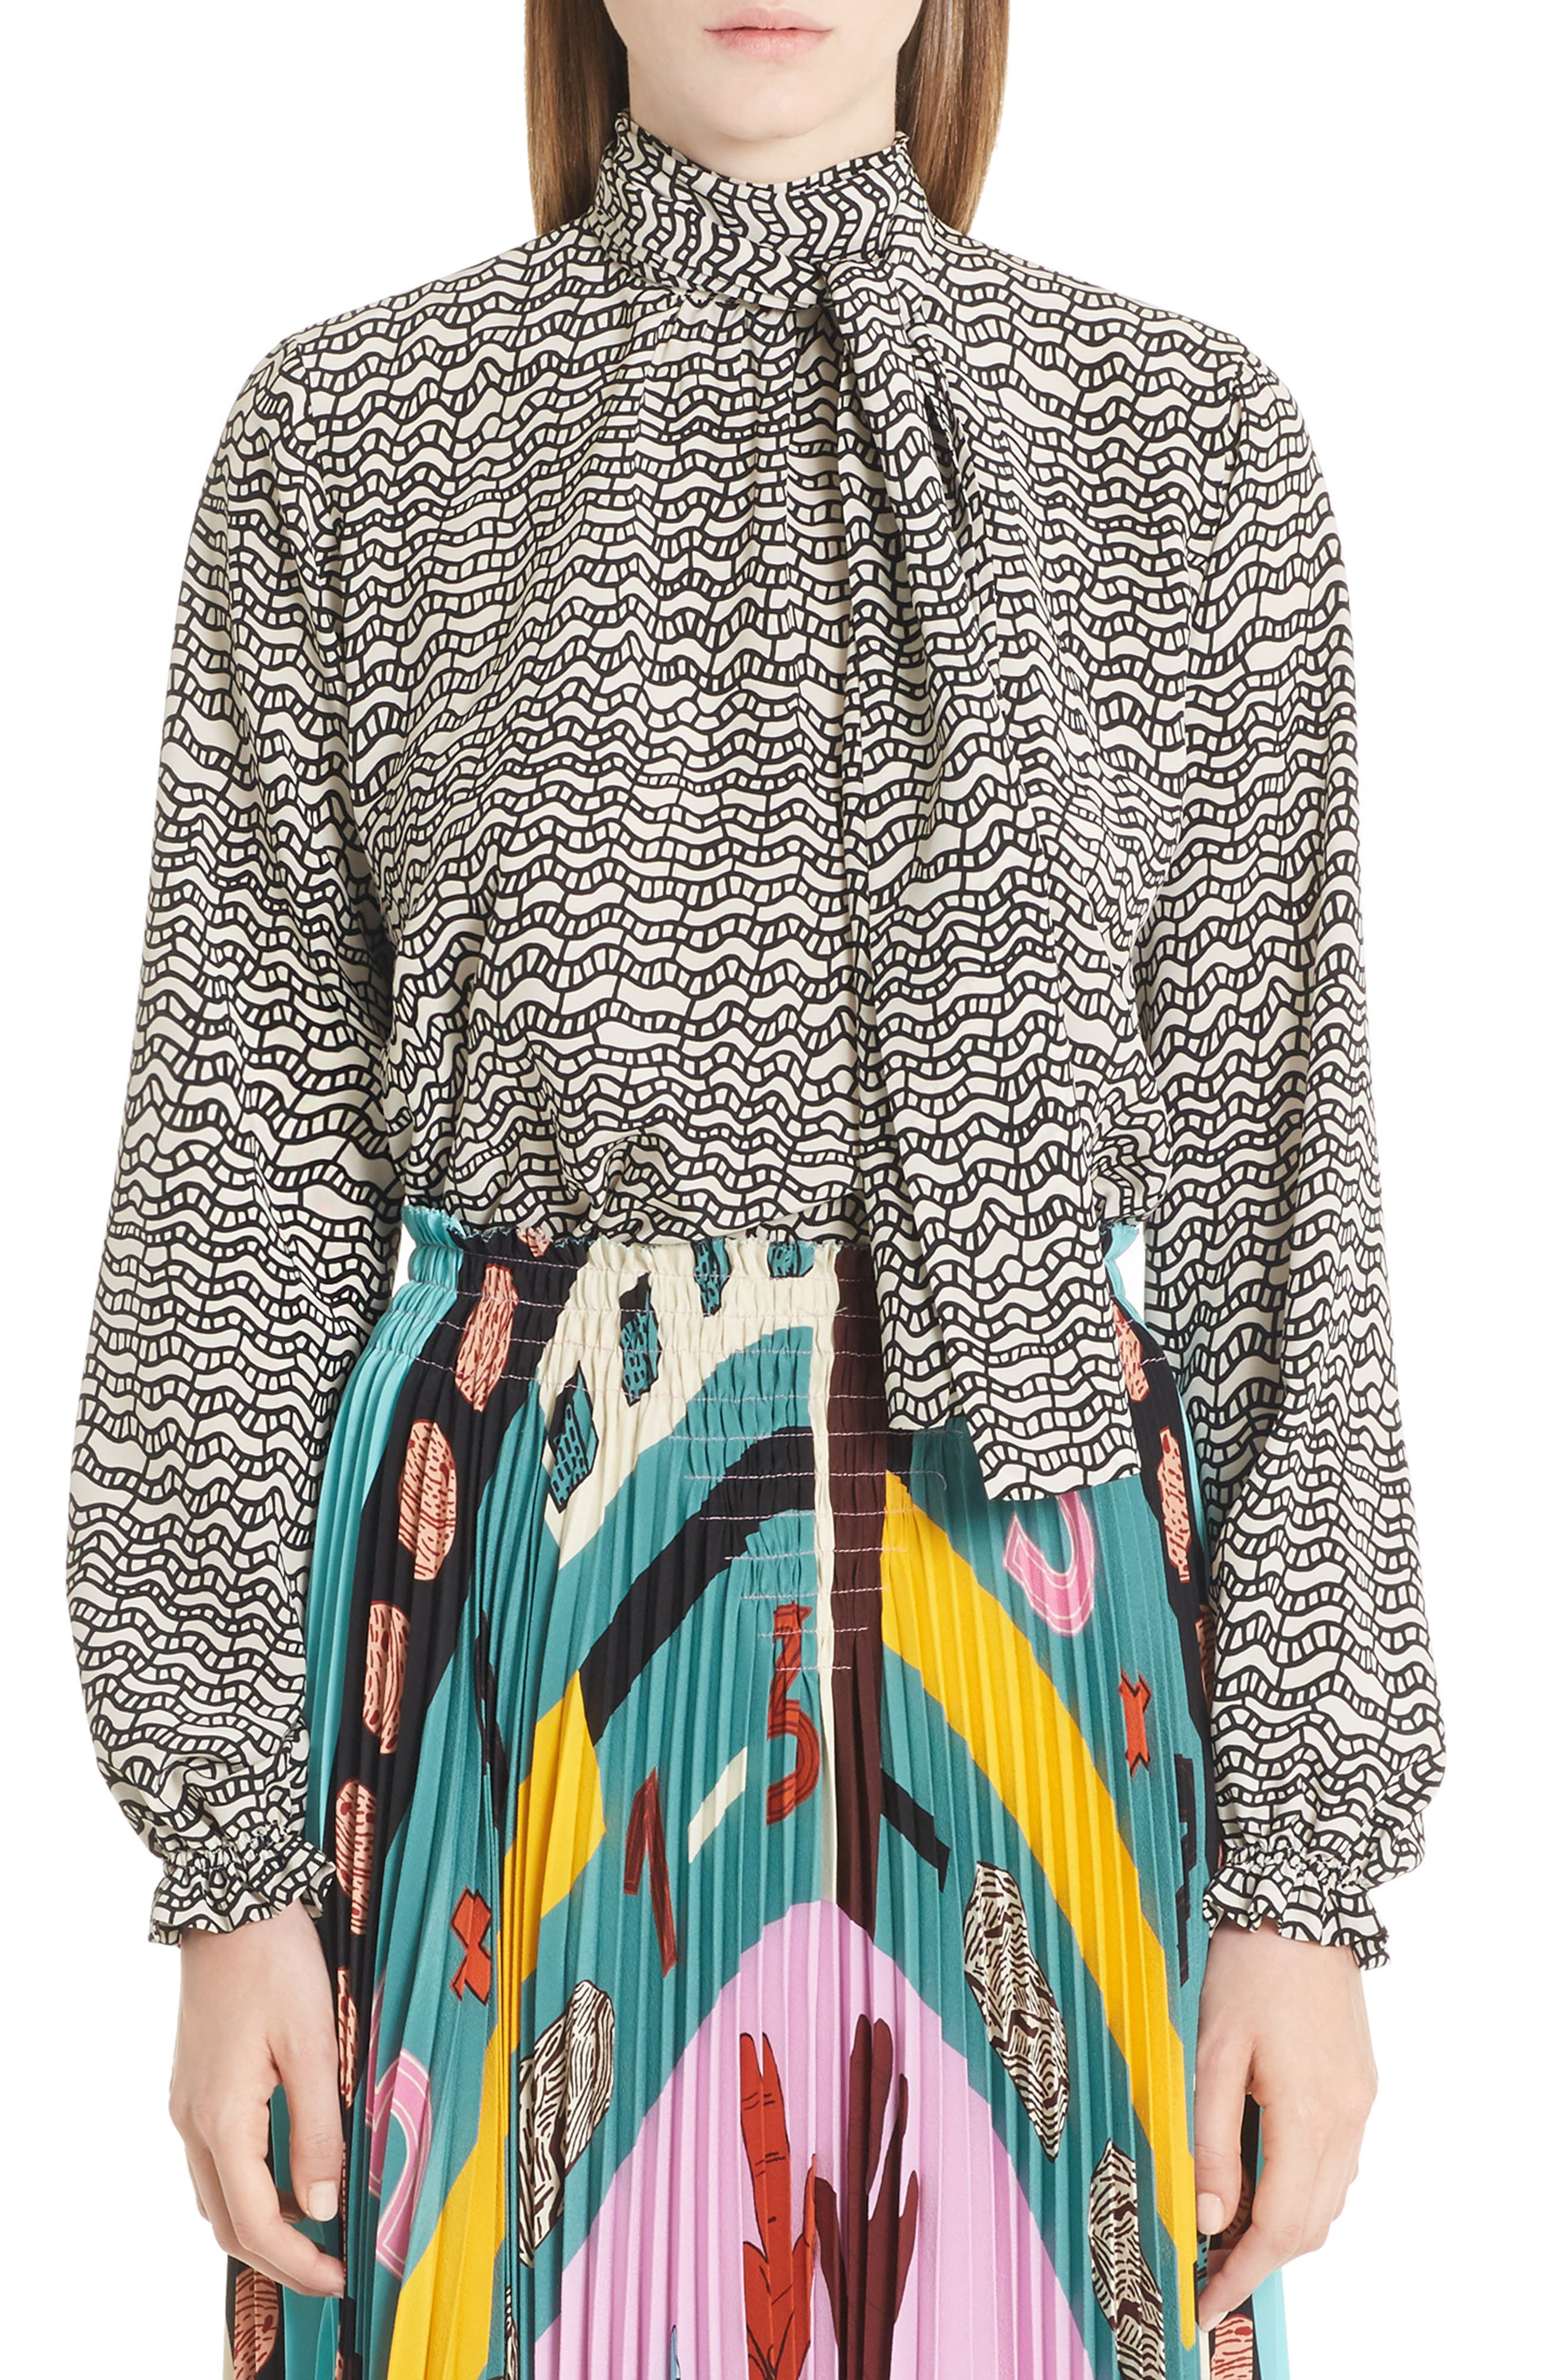 Graphic Print Silk Crêpe de Chine Blouse,                         Main,                         color, 001